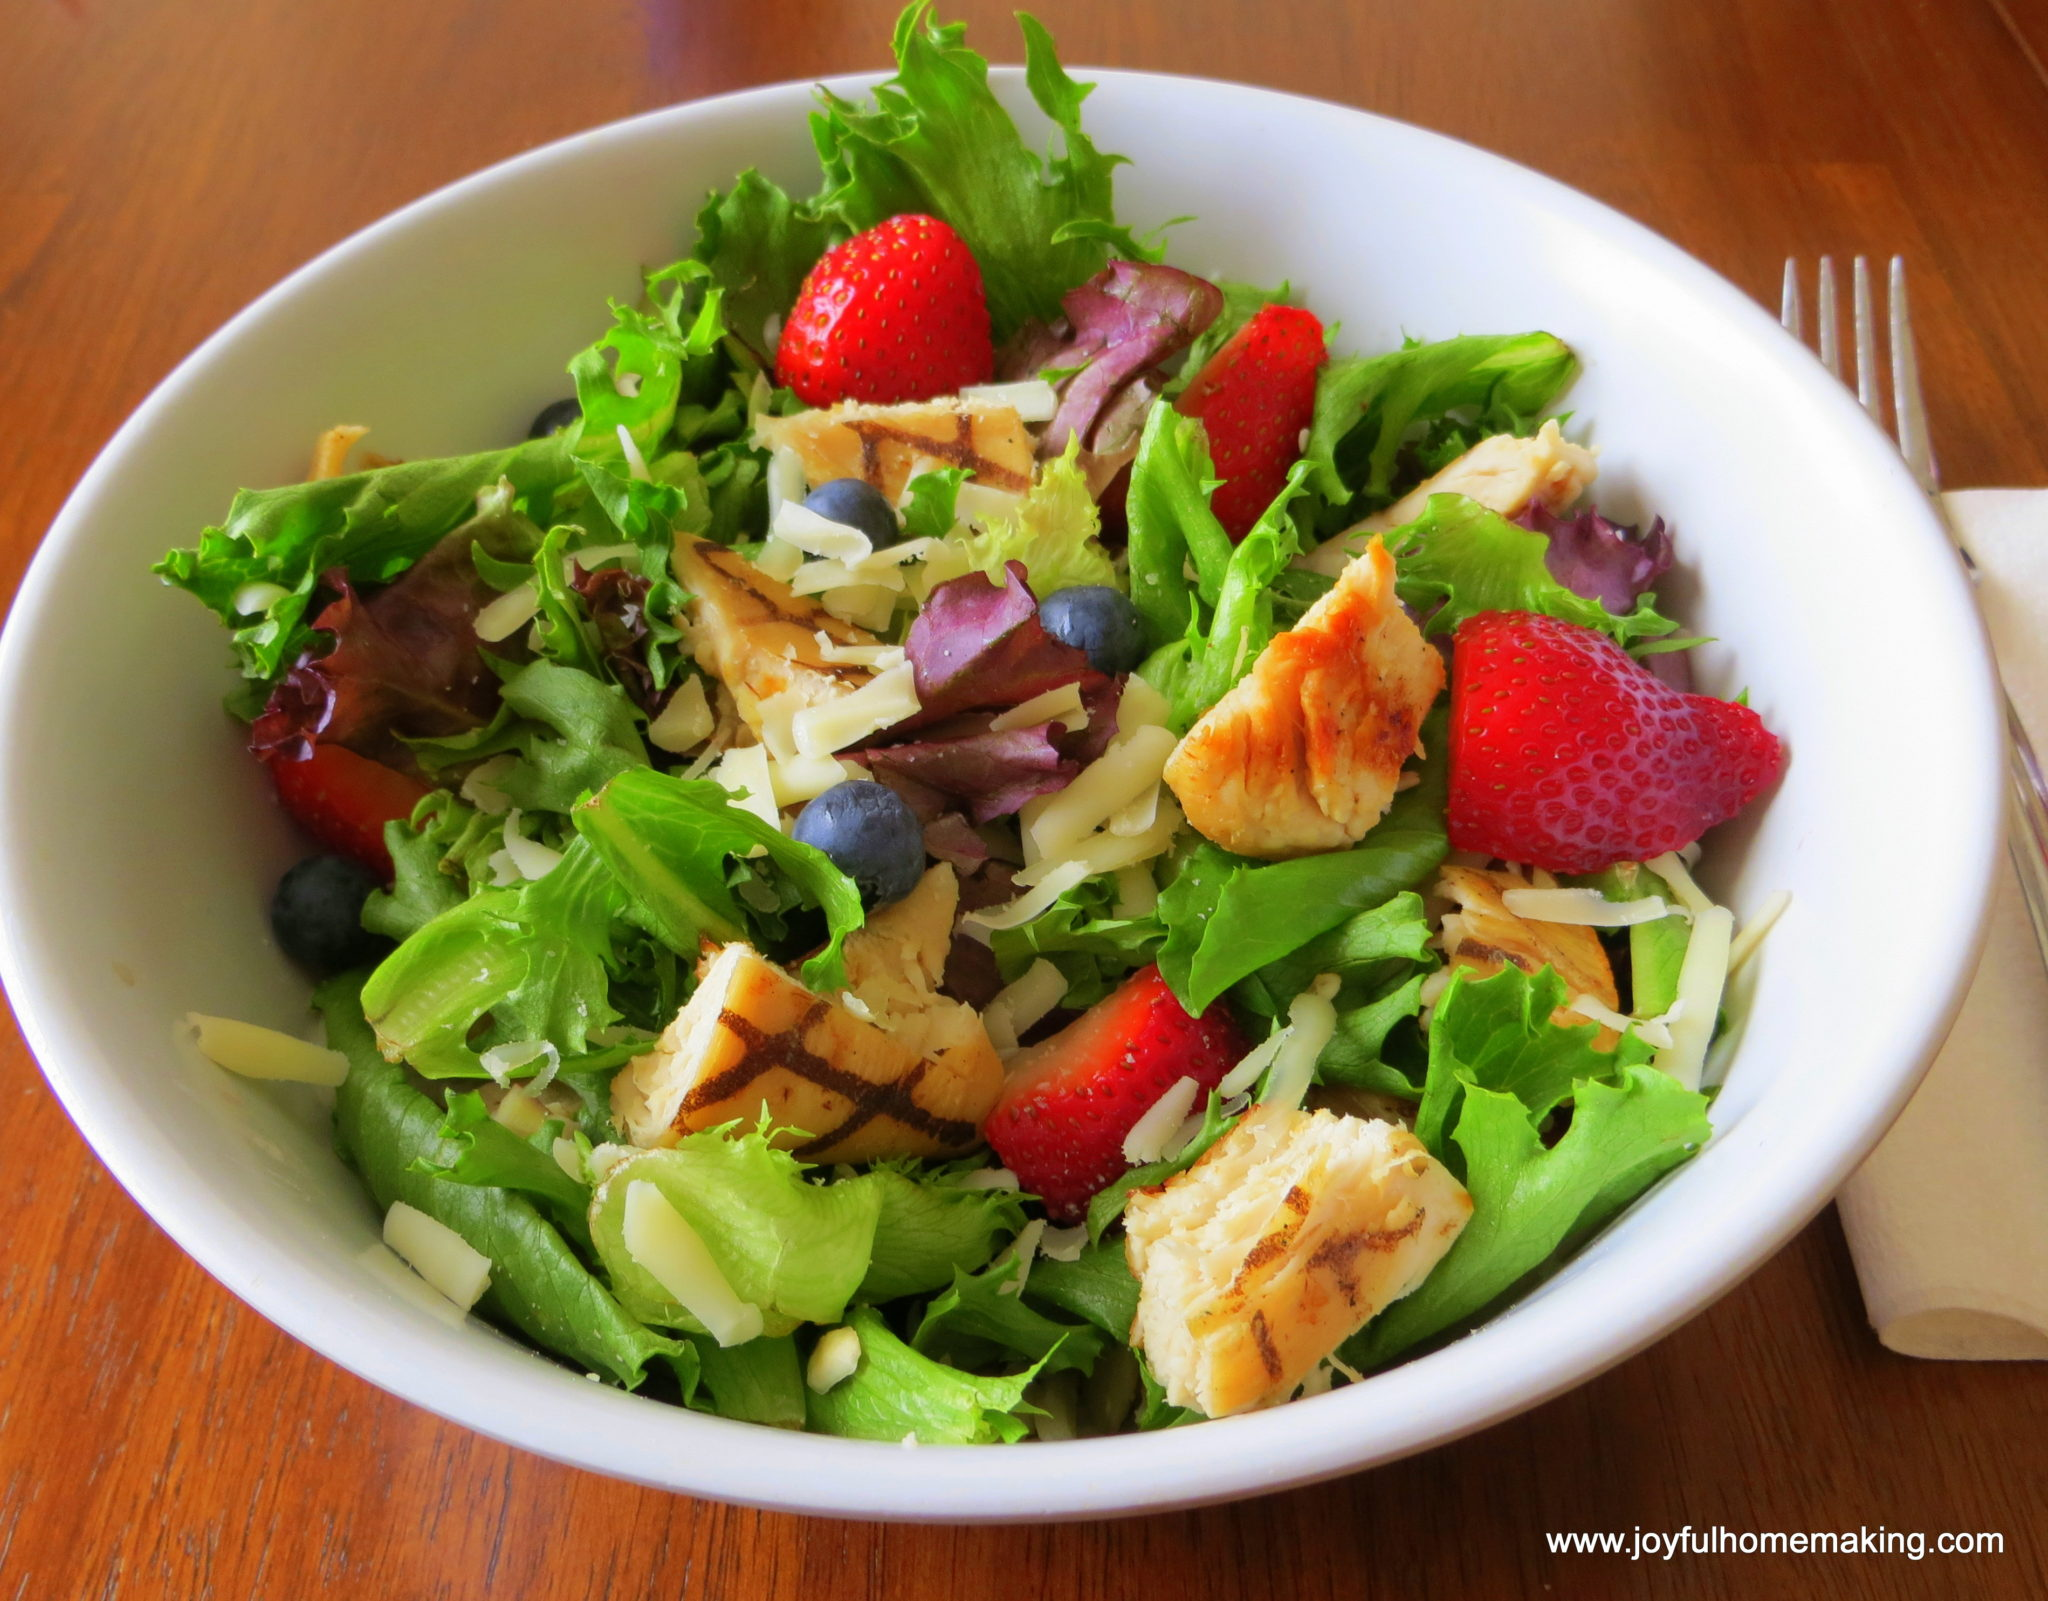 https://joyfulhomemaking.com/2013/07/wendys-copycat-berry-almond-chicken-salad.html